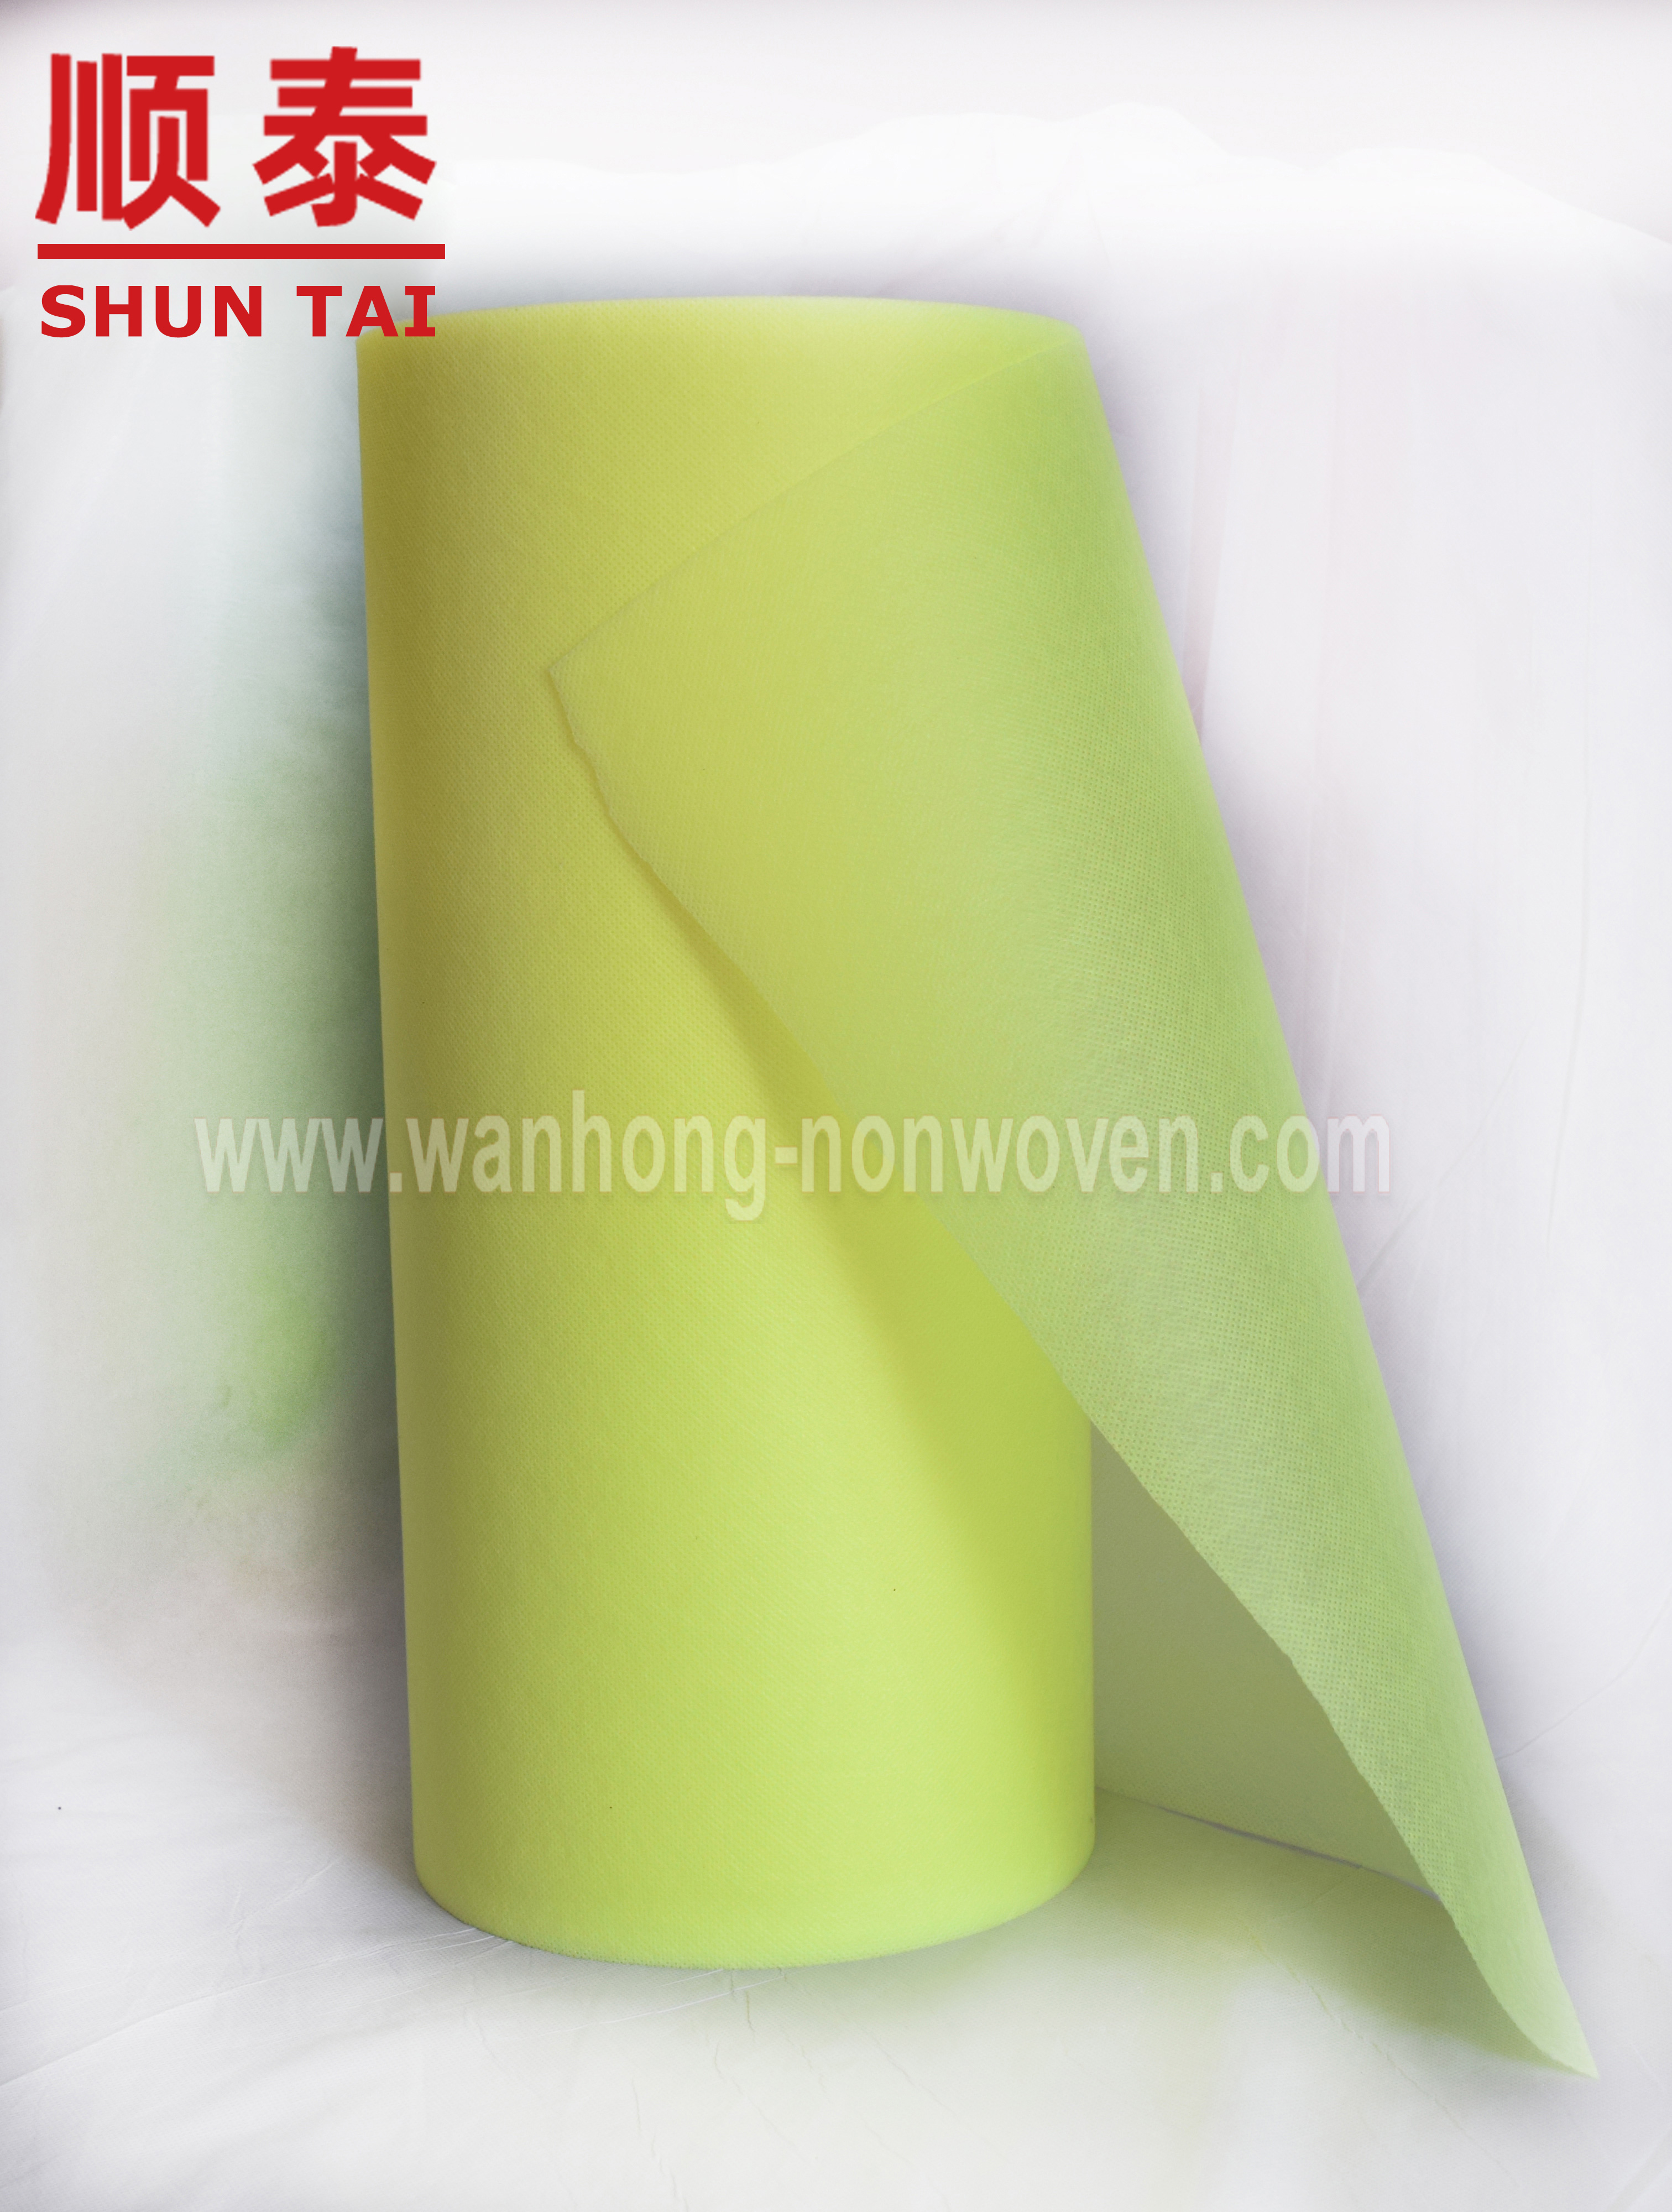 PP Spunbond Non Woven Fabric For Bag / Bedding / Packing / Agriculture Manufacturers, PP Spunbond Non Woven Fabric For Bag / Bedding / Packing / Agriculture Factory, Supply PP Spunbond Non Woven Fabric For Bag / Bedding / Packing / Agriculture